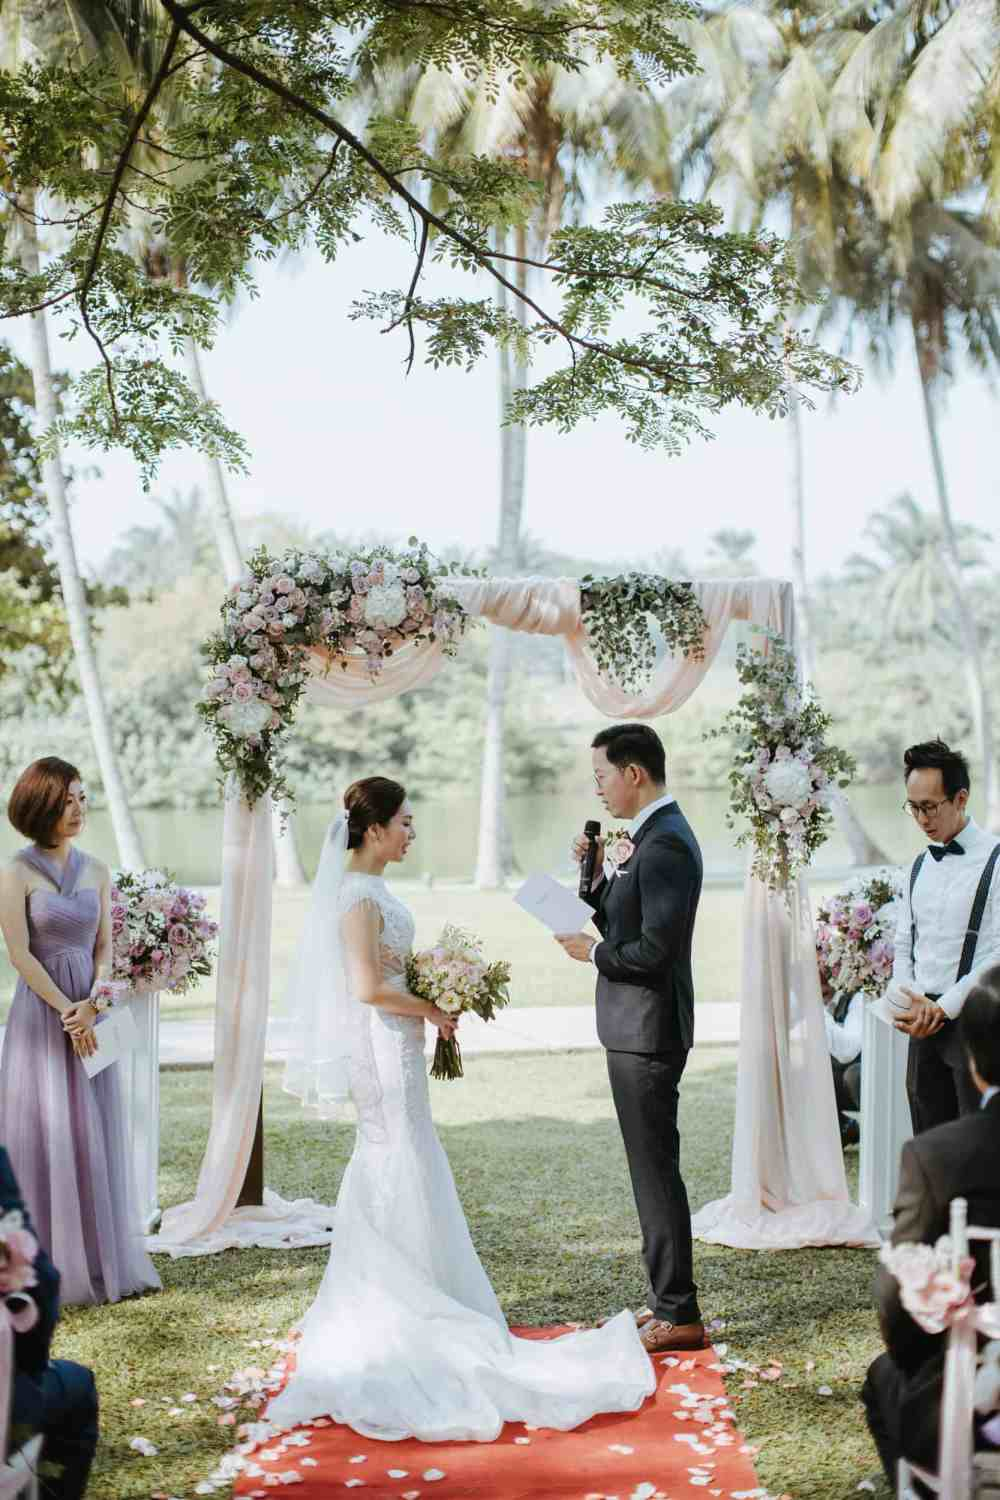 Garden Romantic Rustic Rosy Golden Wedding at The Saujana Hotel Subang Kuala Lumpur malaysia cliff choong the cross effects kevin tan destination portrait and wedding photographer malaysia kuala lumpur bride and groom couple kiss romantic intimate moment scene getting ready make up Ring detail green shoes